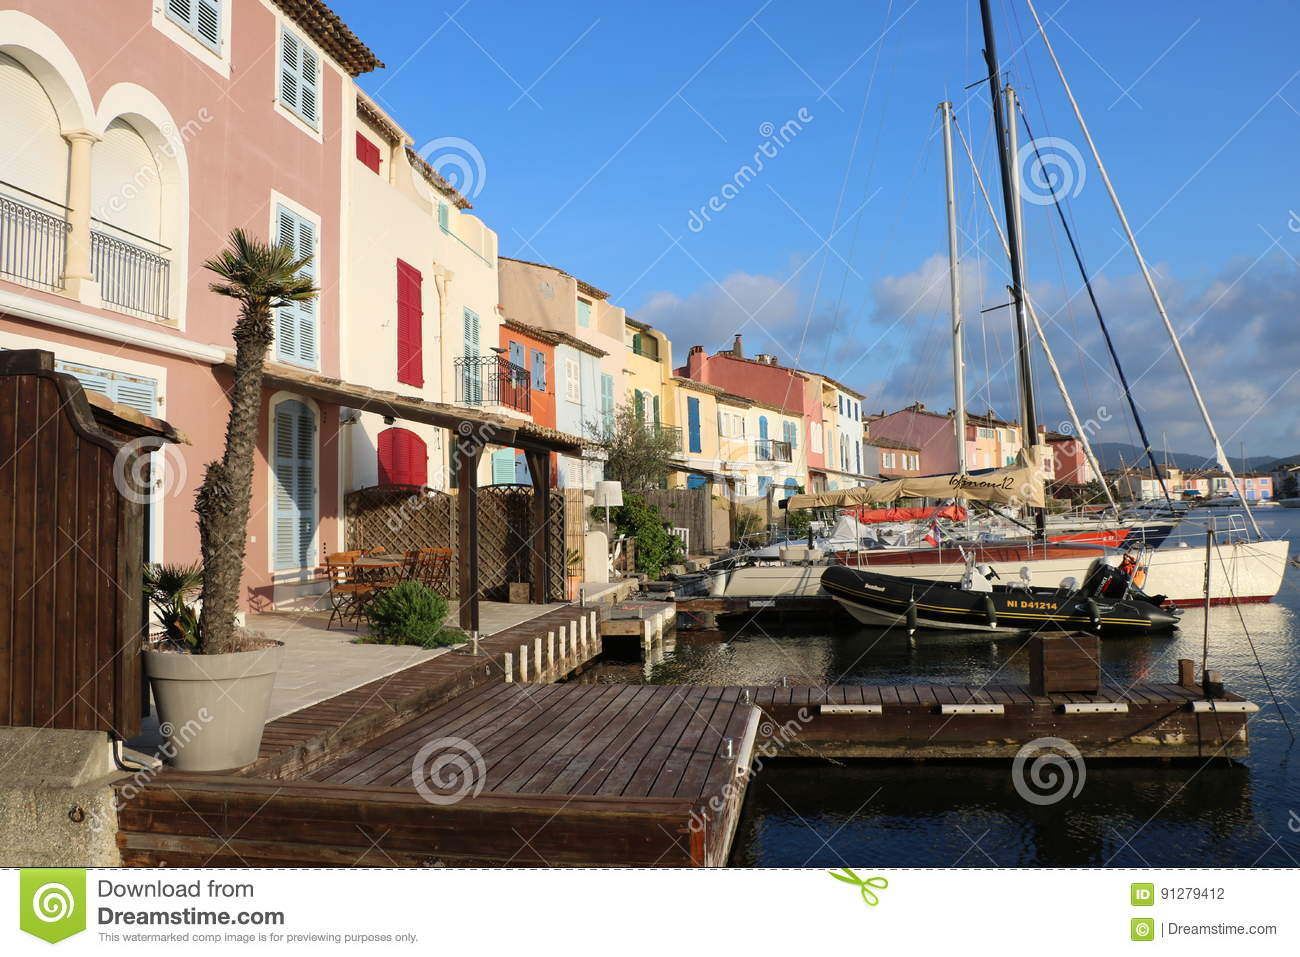 Wonderful landscape of Port Grimaud on the French Riviera in France